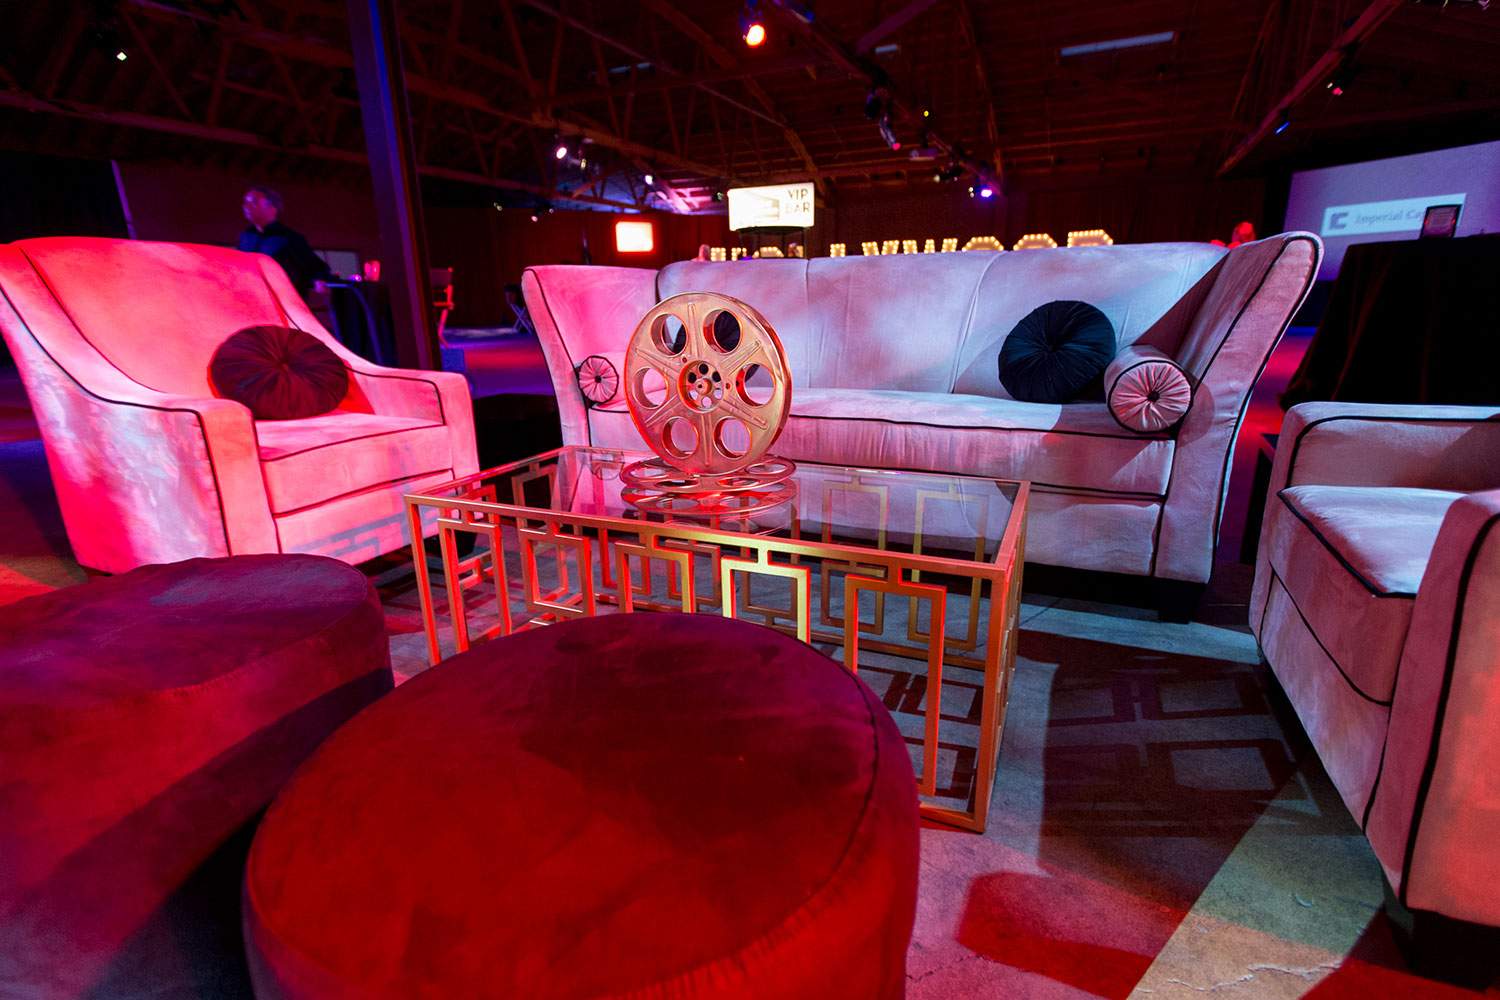 toast-party-event-nightclub-justic-ball-seating-10twelve.jpg